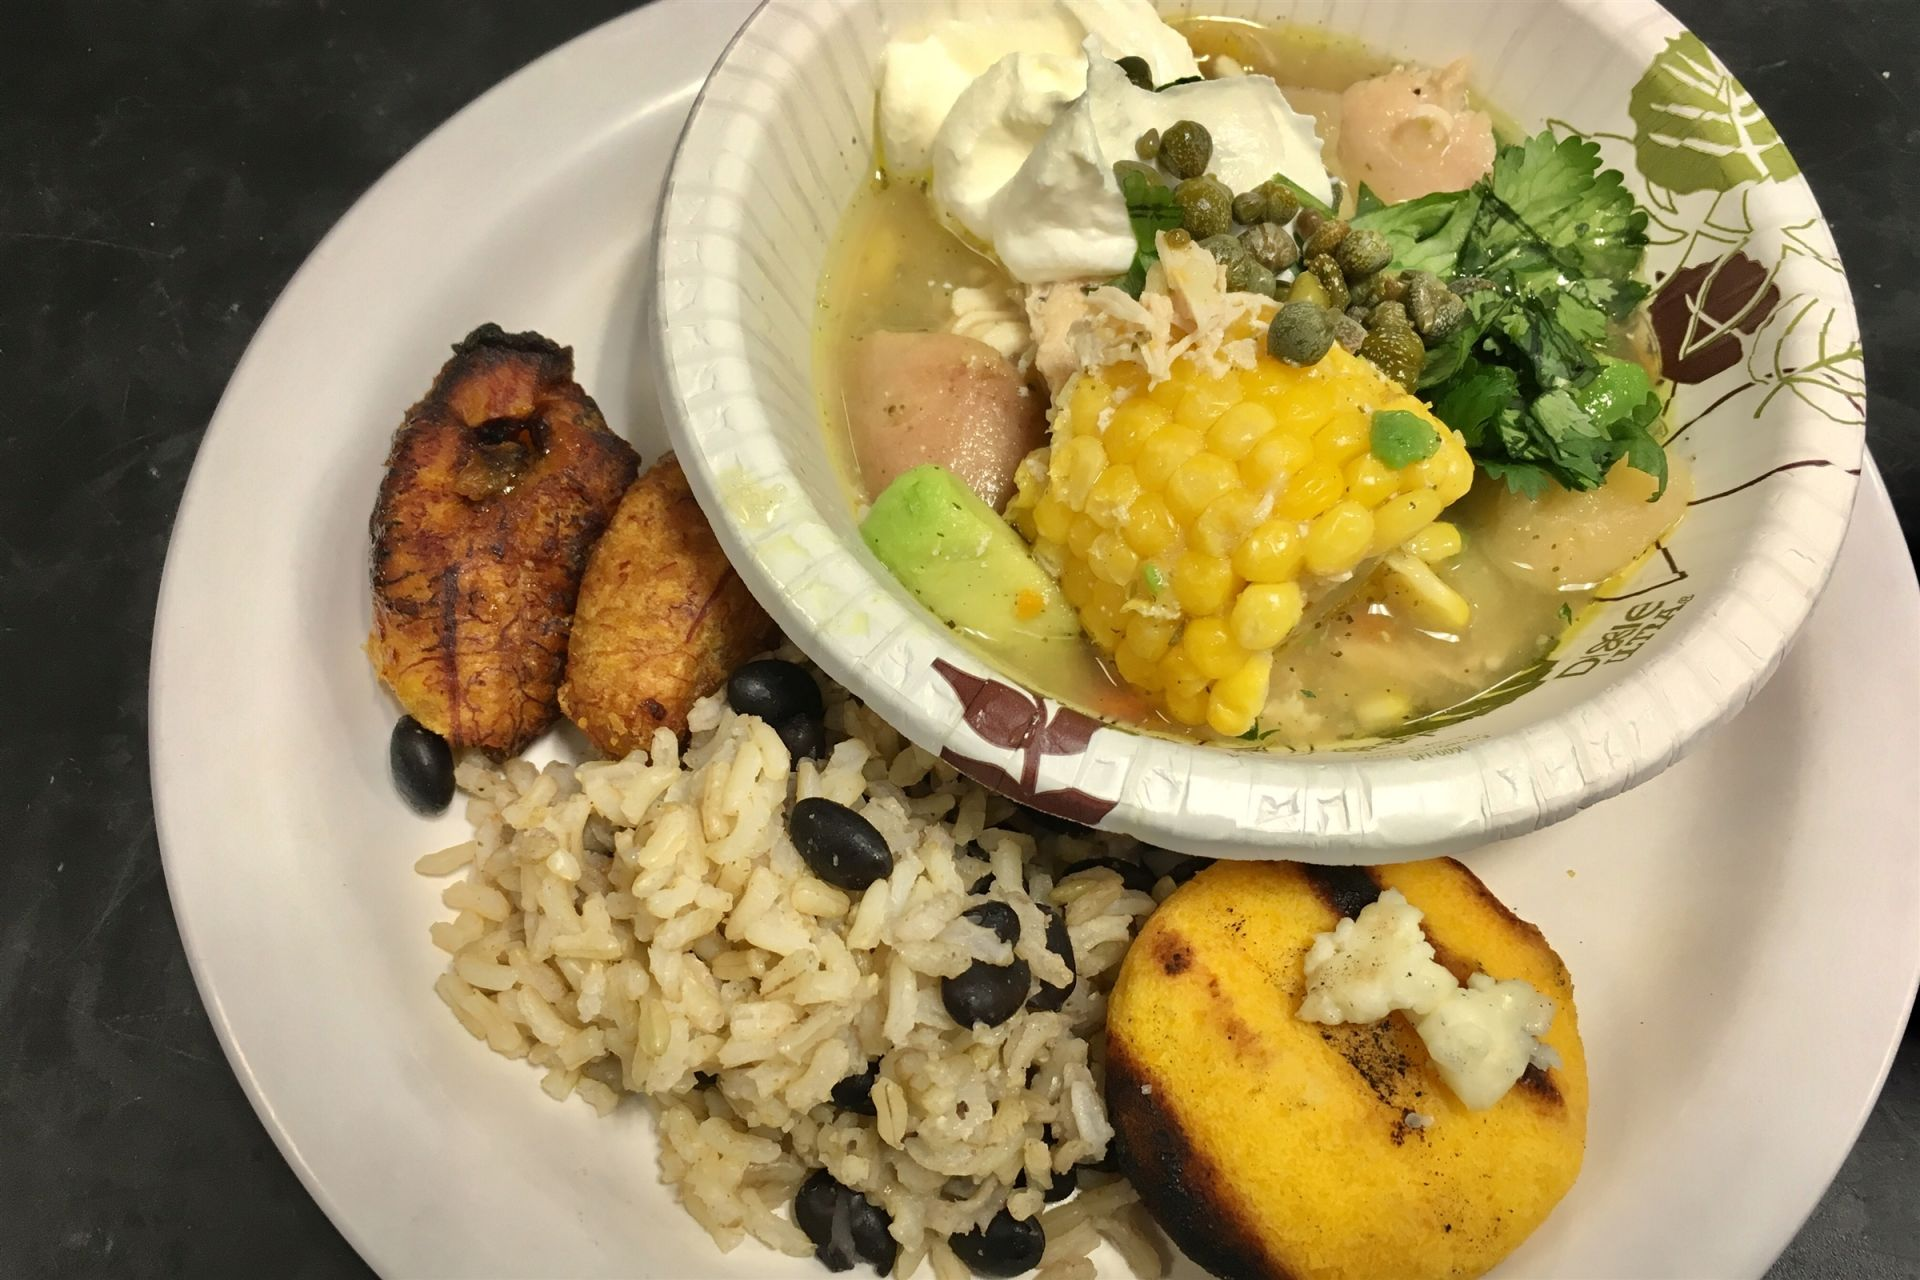 Ajiaco (chicken stew) with avocado & corn, rice & black beans, arepas with cheese, & roasted plantains.